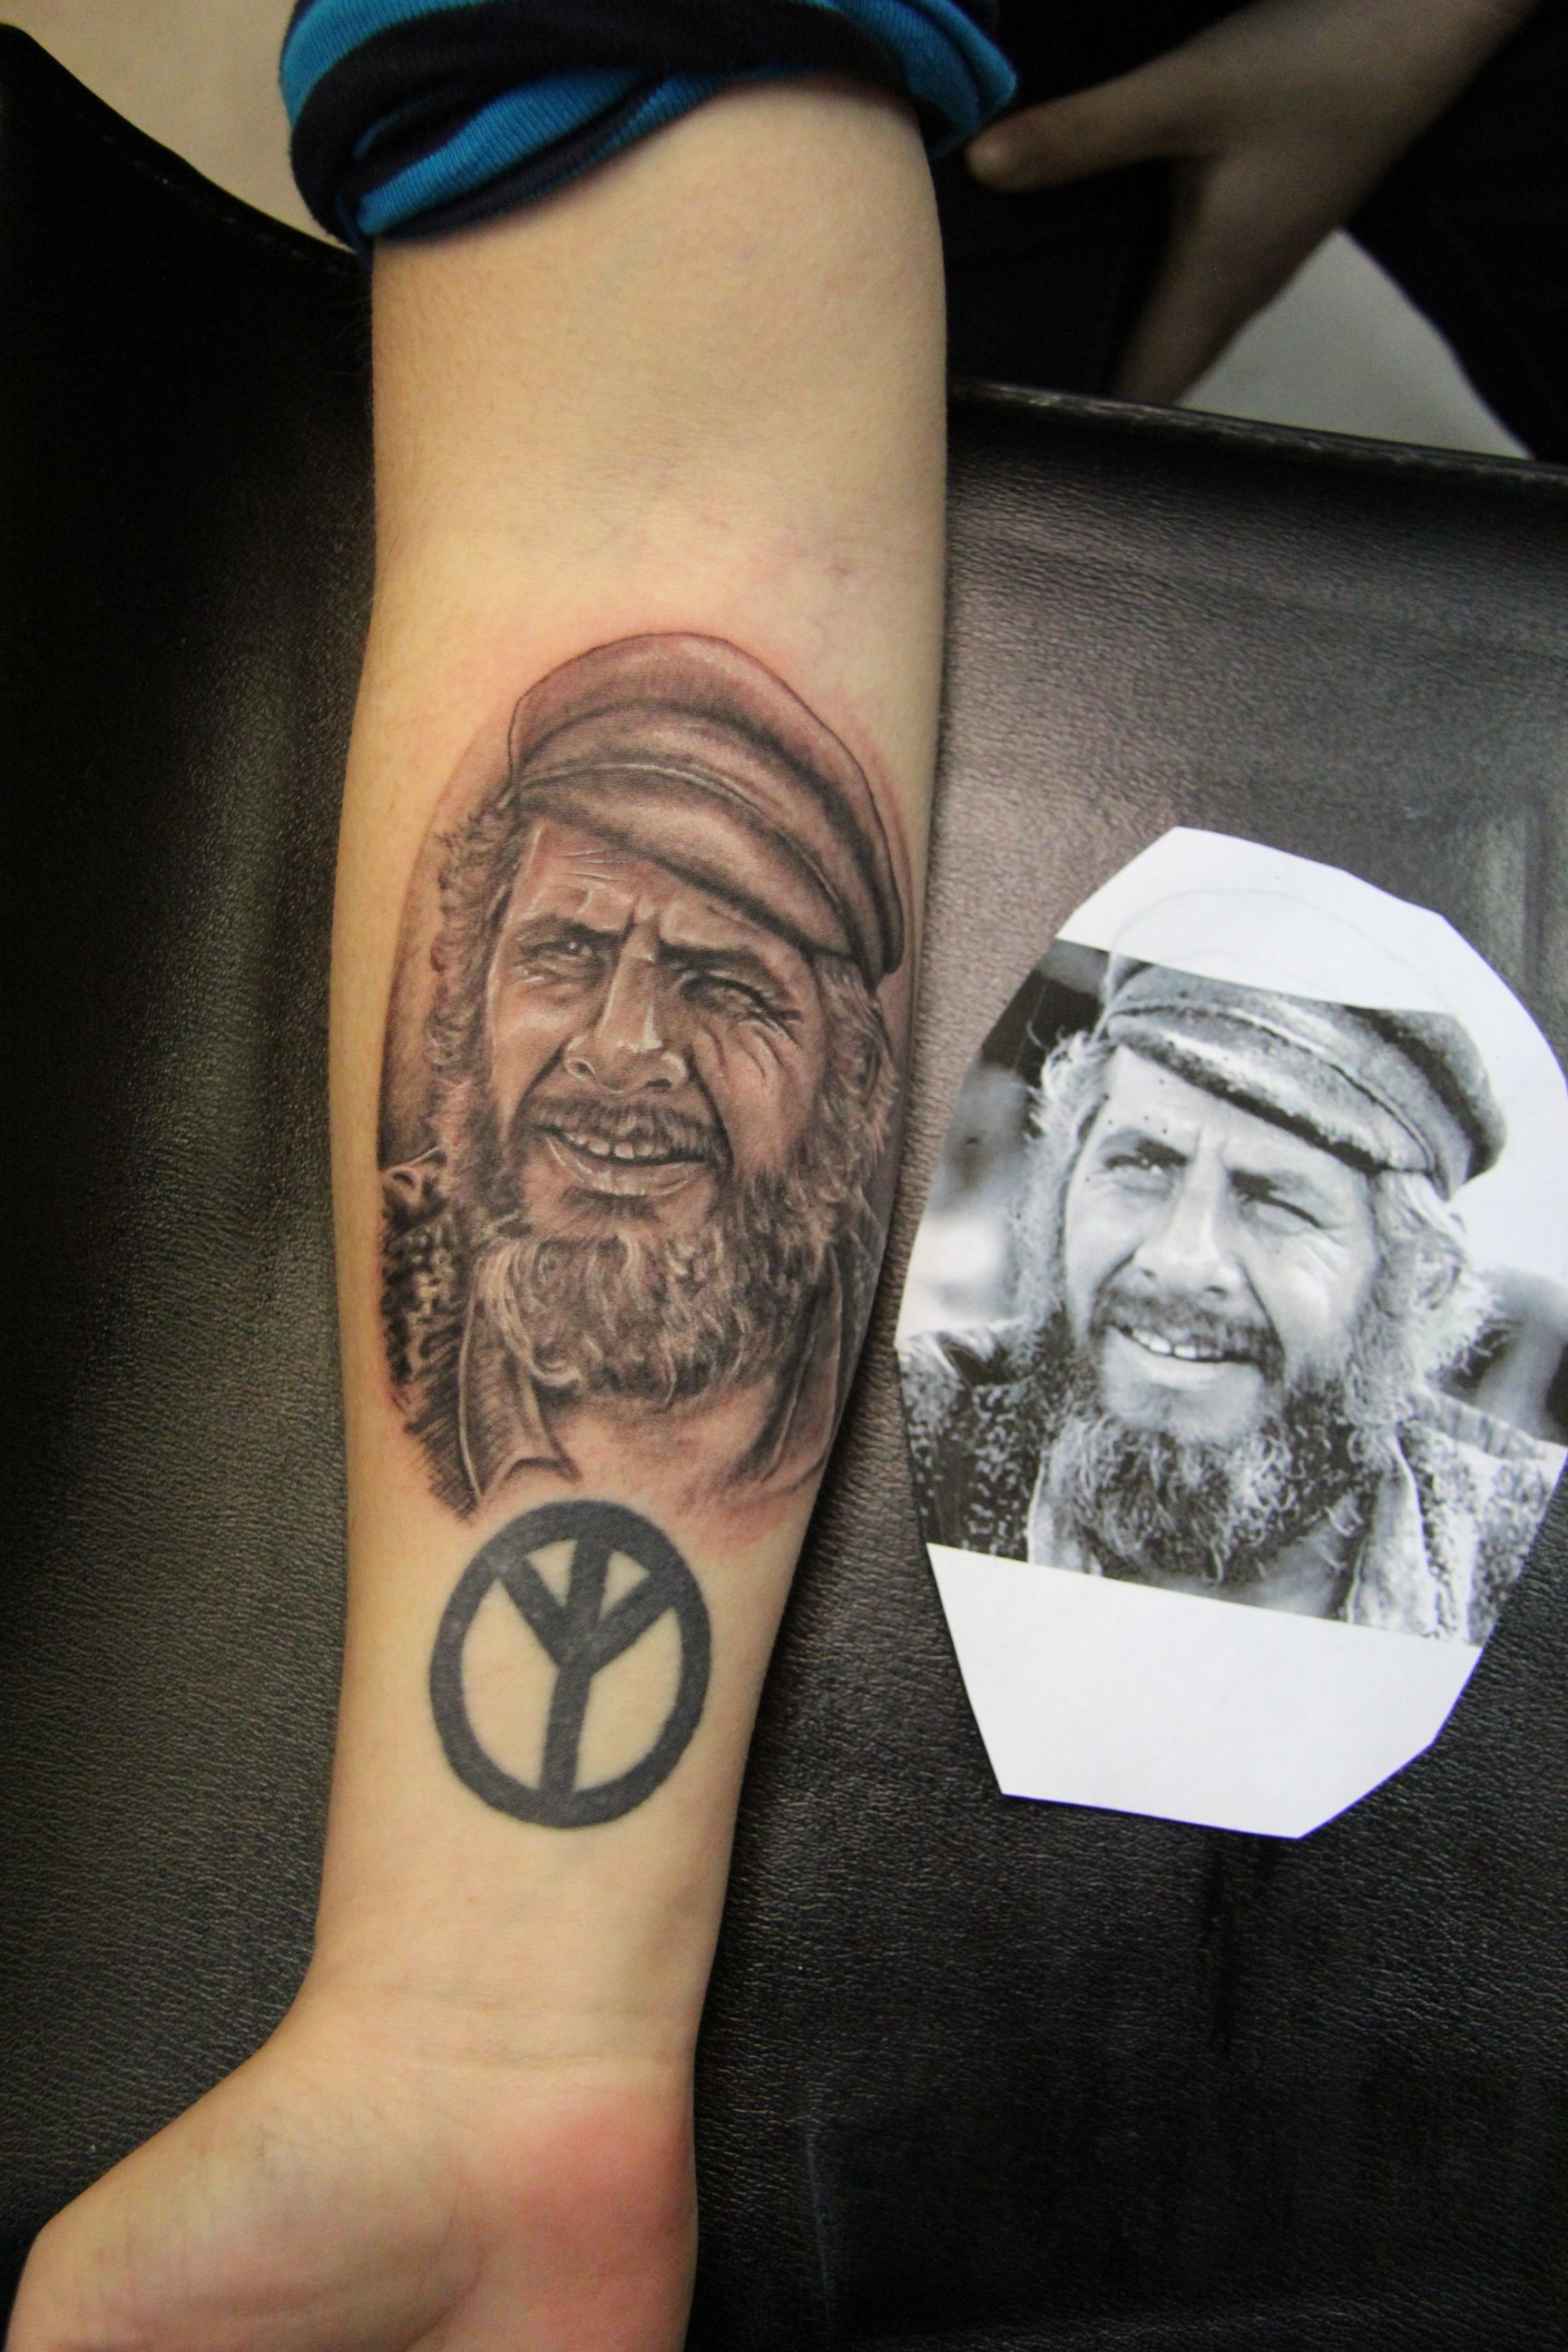 Fiddler On The Roof Tattoo